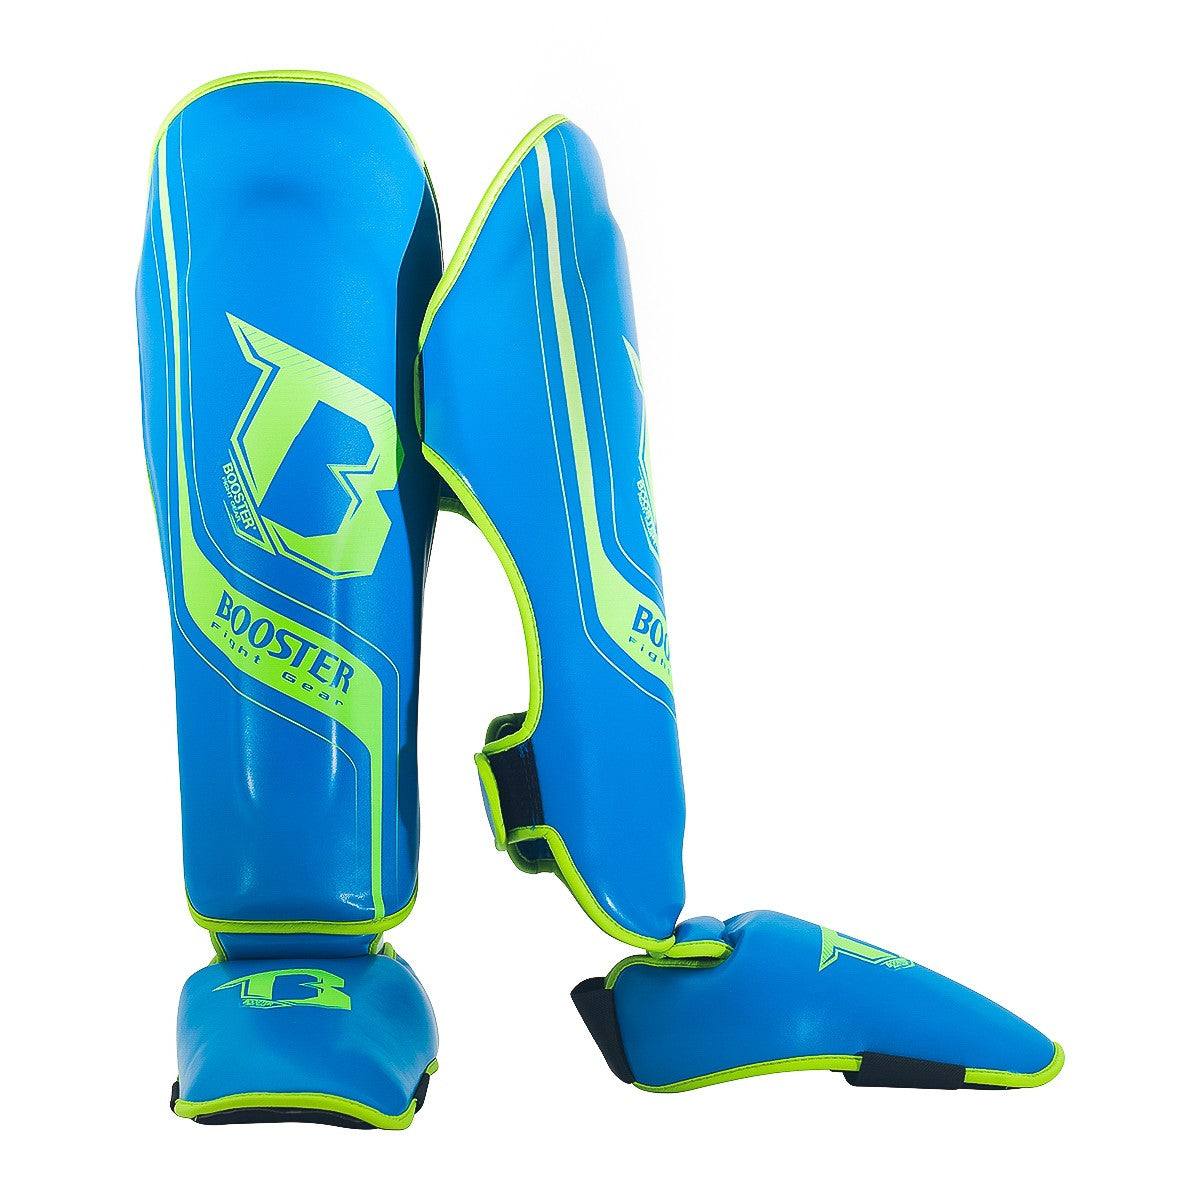 Booster Enforcer Shin Guards - Blue